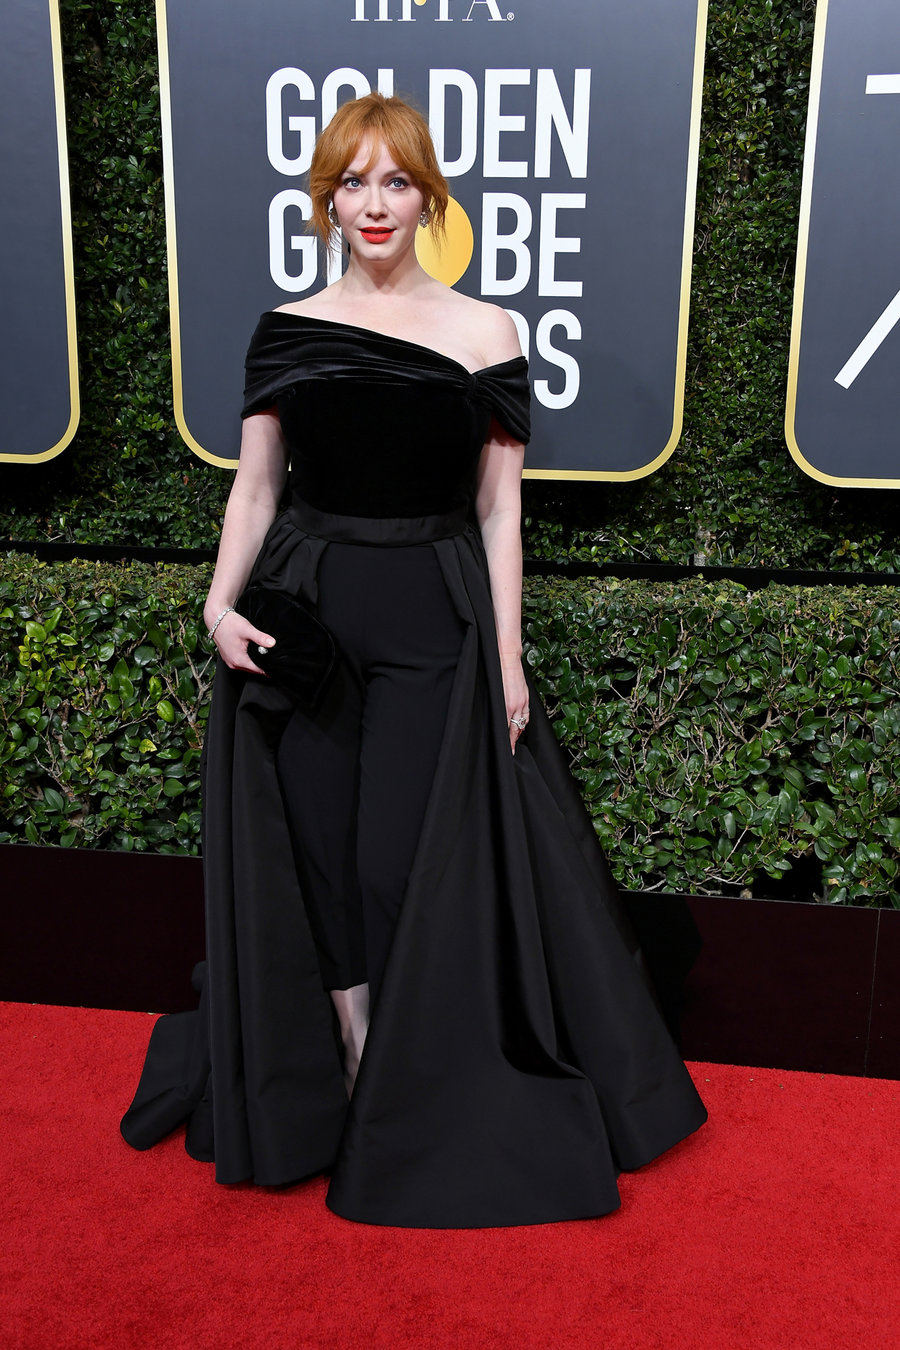 christina-hendricks-golden-globes-arrivals-2018-billboard-1240.jpg